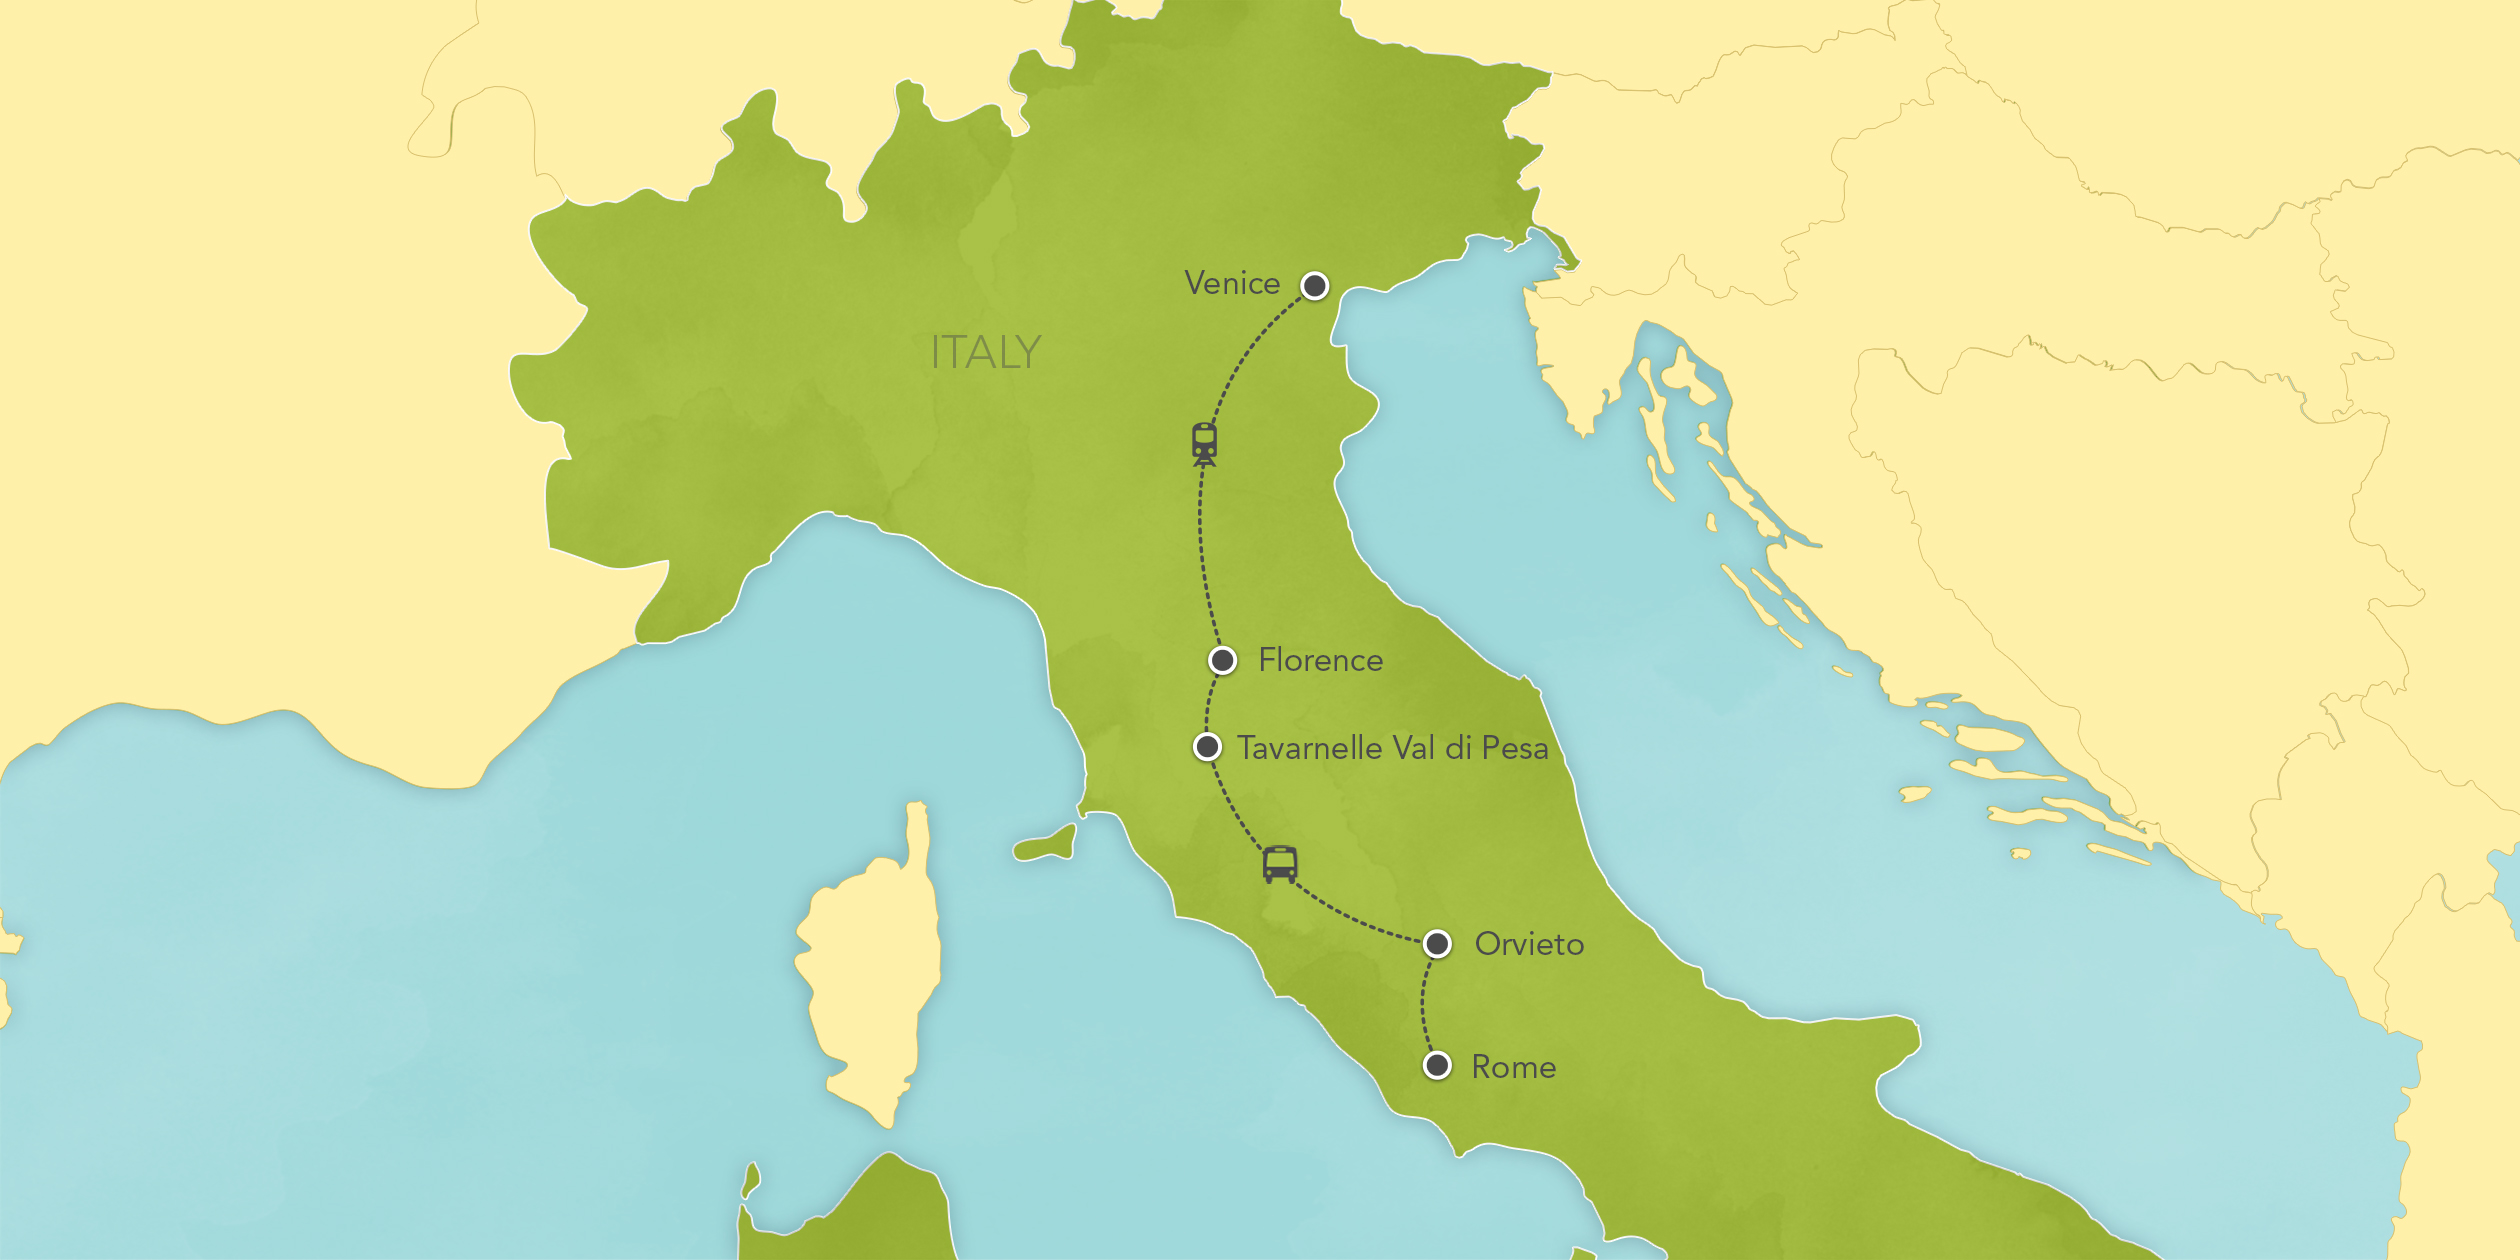 Map for Italy: Rome, Florence, Tuscany, Venice 2019